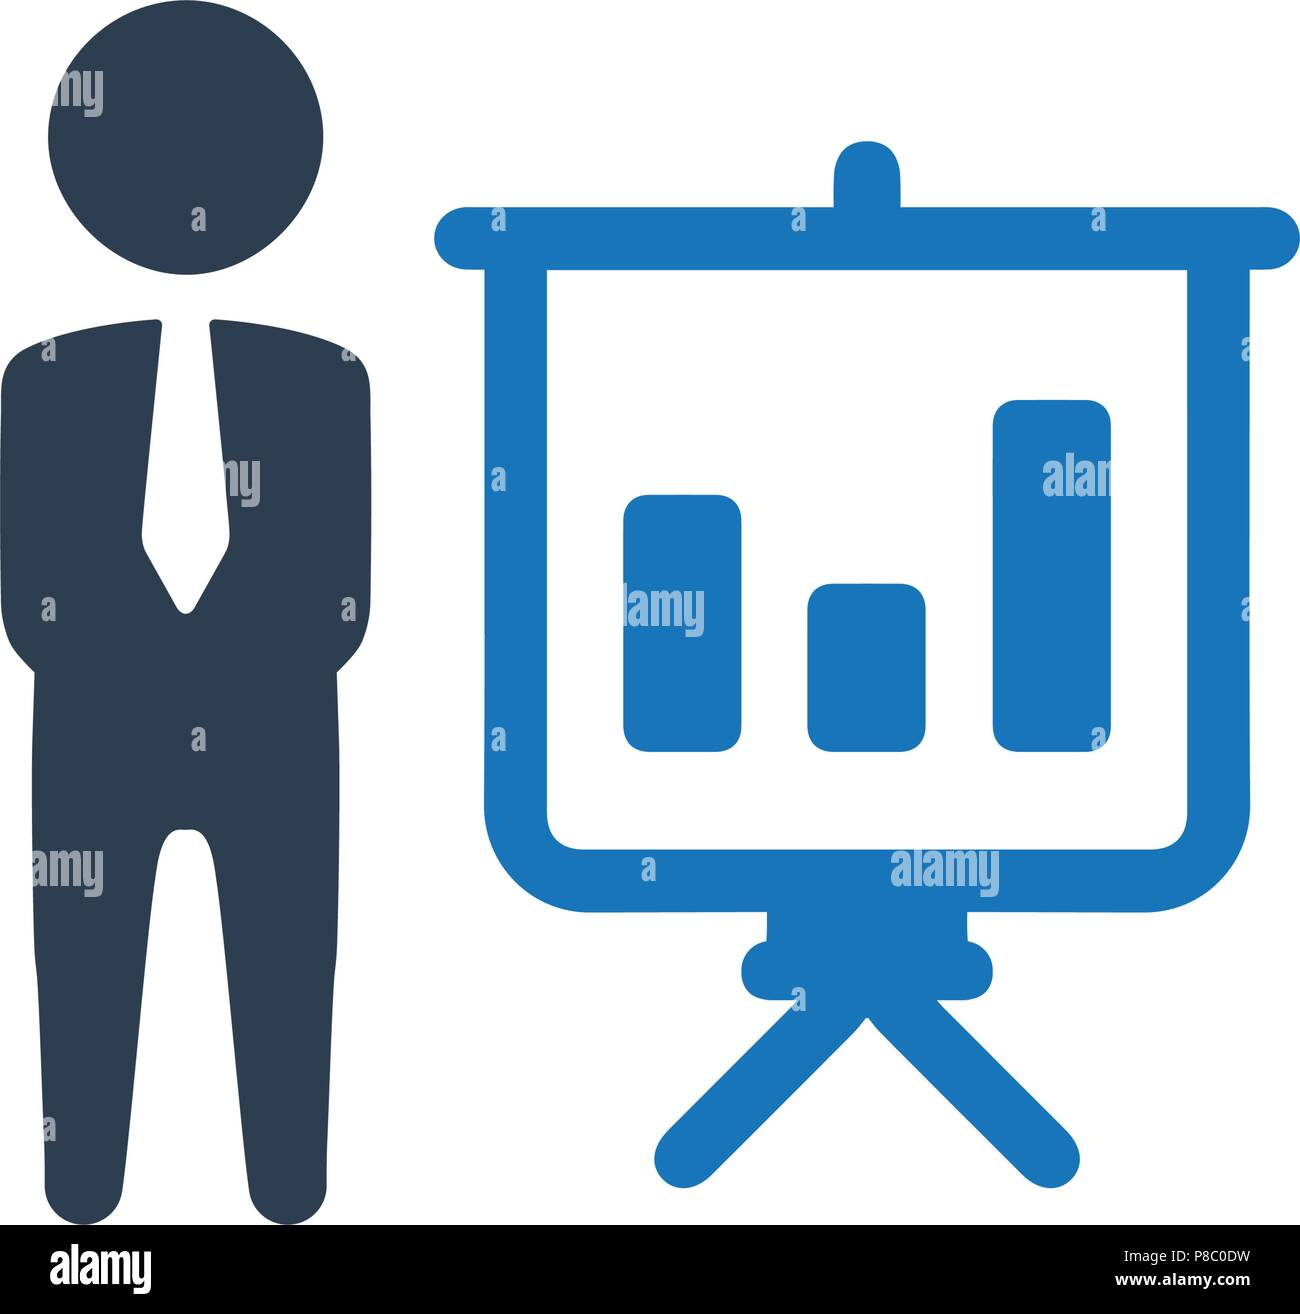 business graphical presentation icon stock vector art illustration